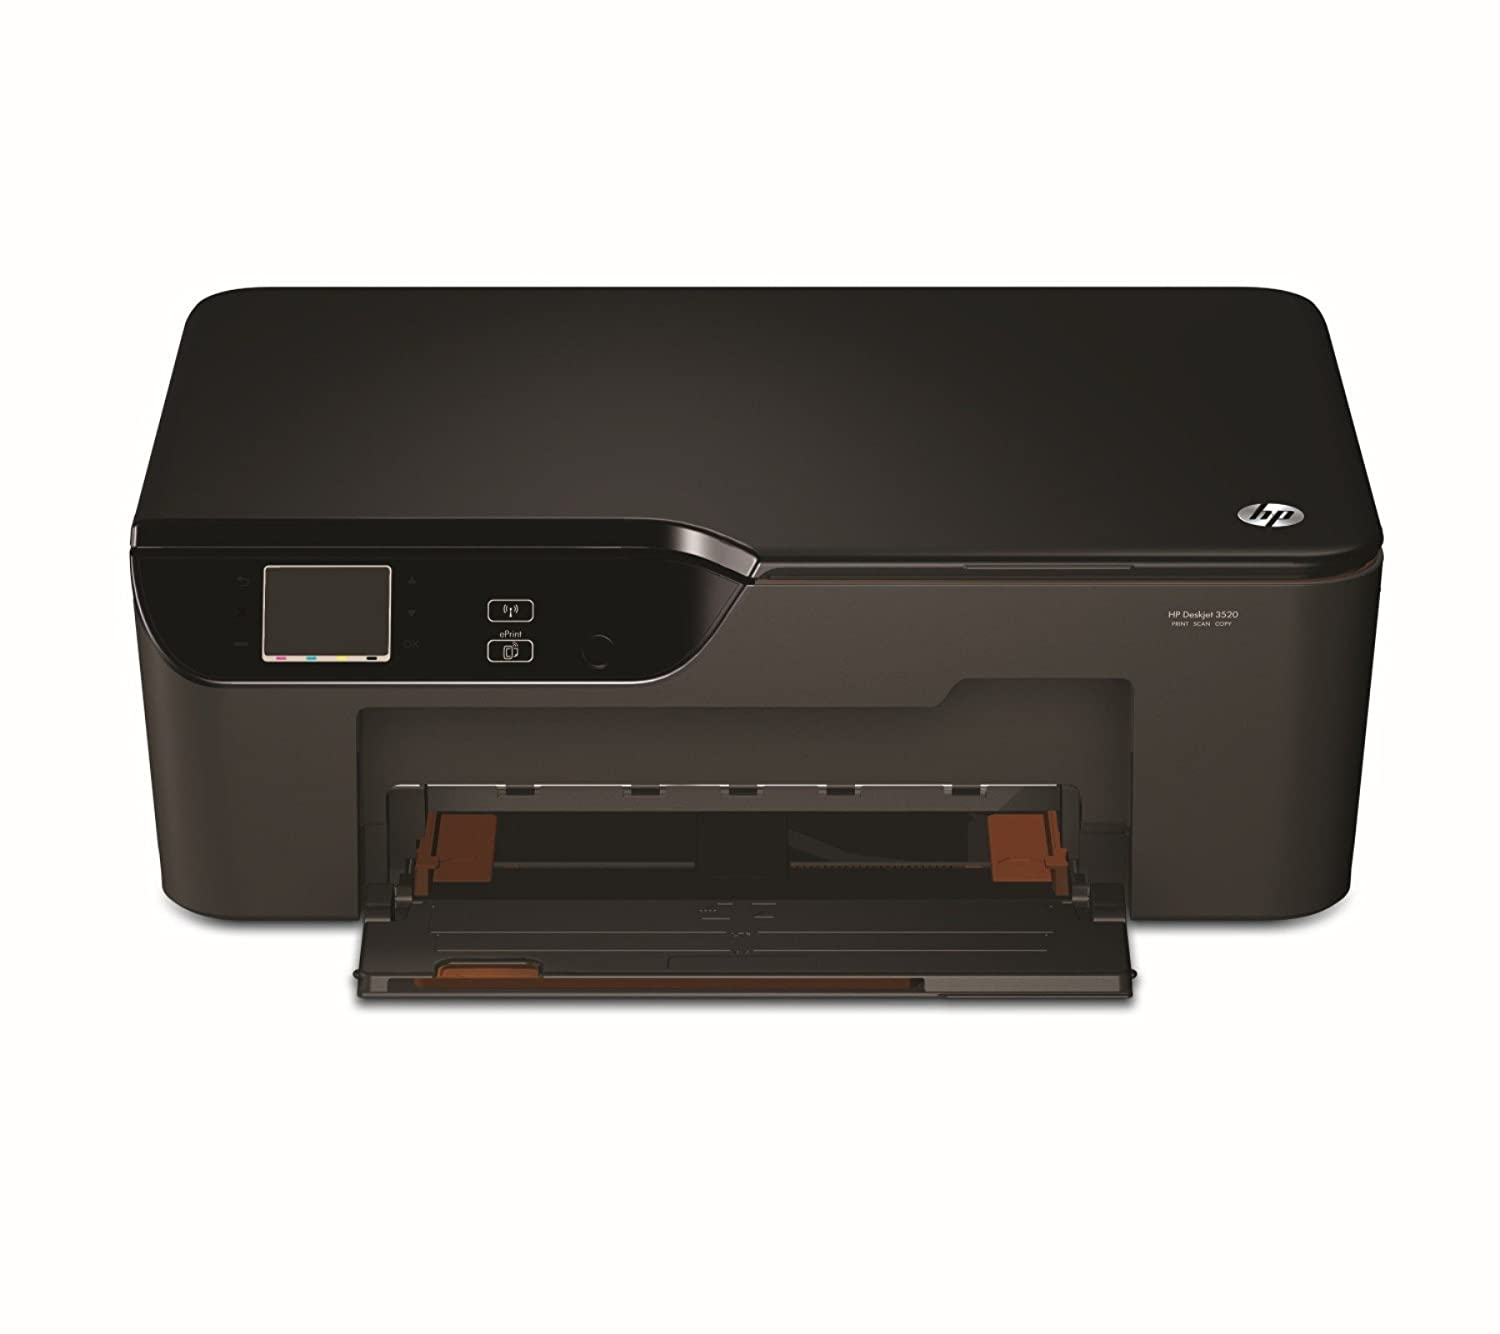 HP Deskjet 3520 e-All-in-One - multifunction (printer/copier/scanner)  (color) (CX056A#B1H) -: Amazon.in: Computers & Accessories